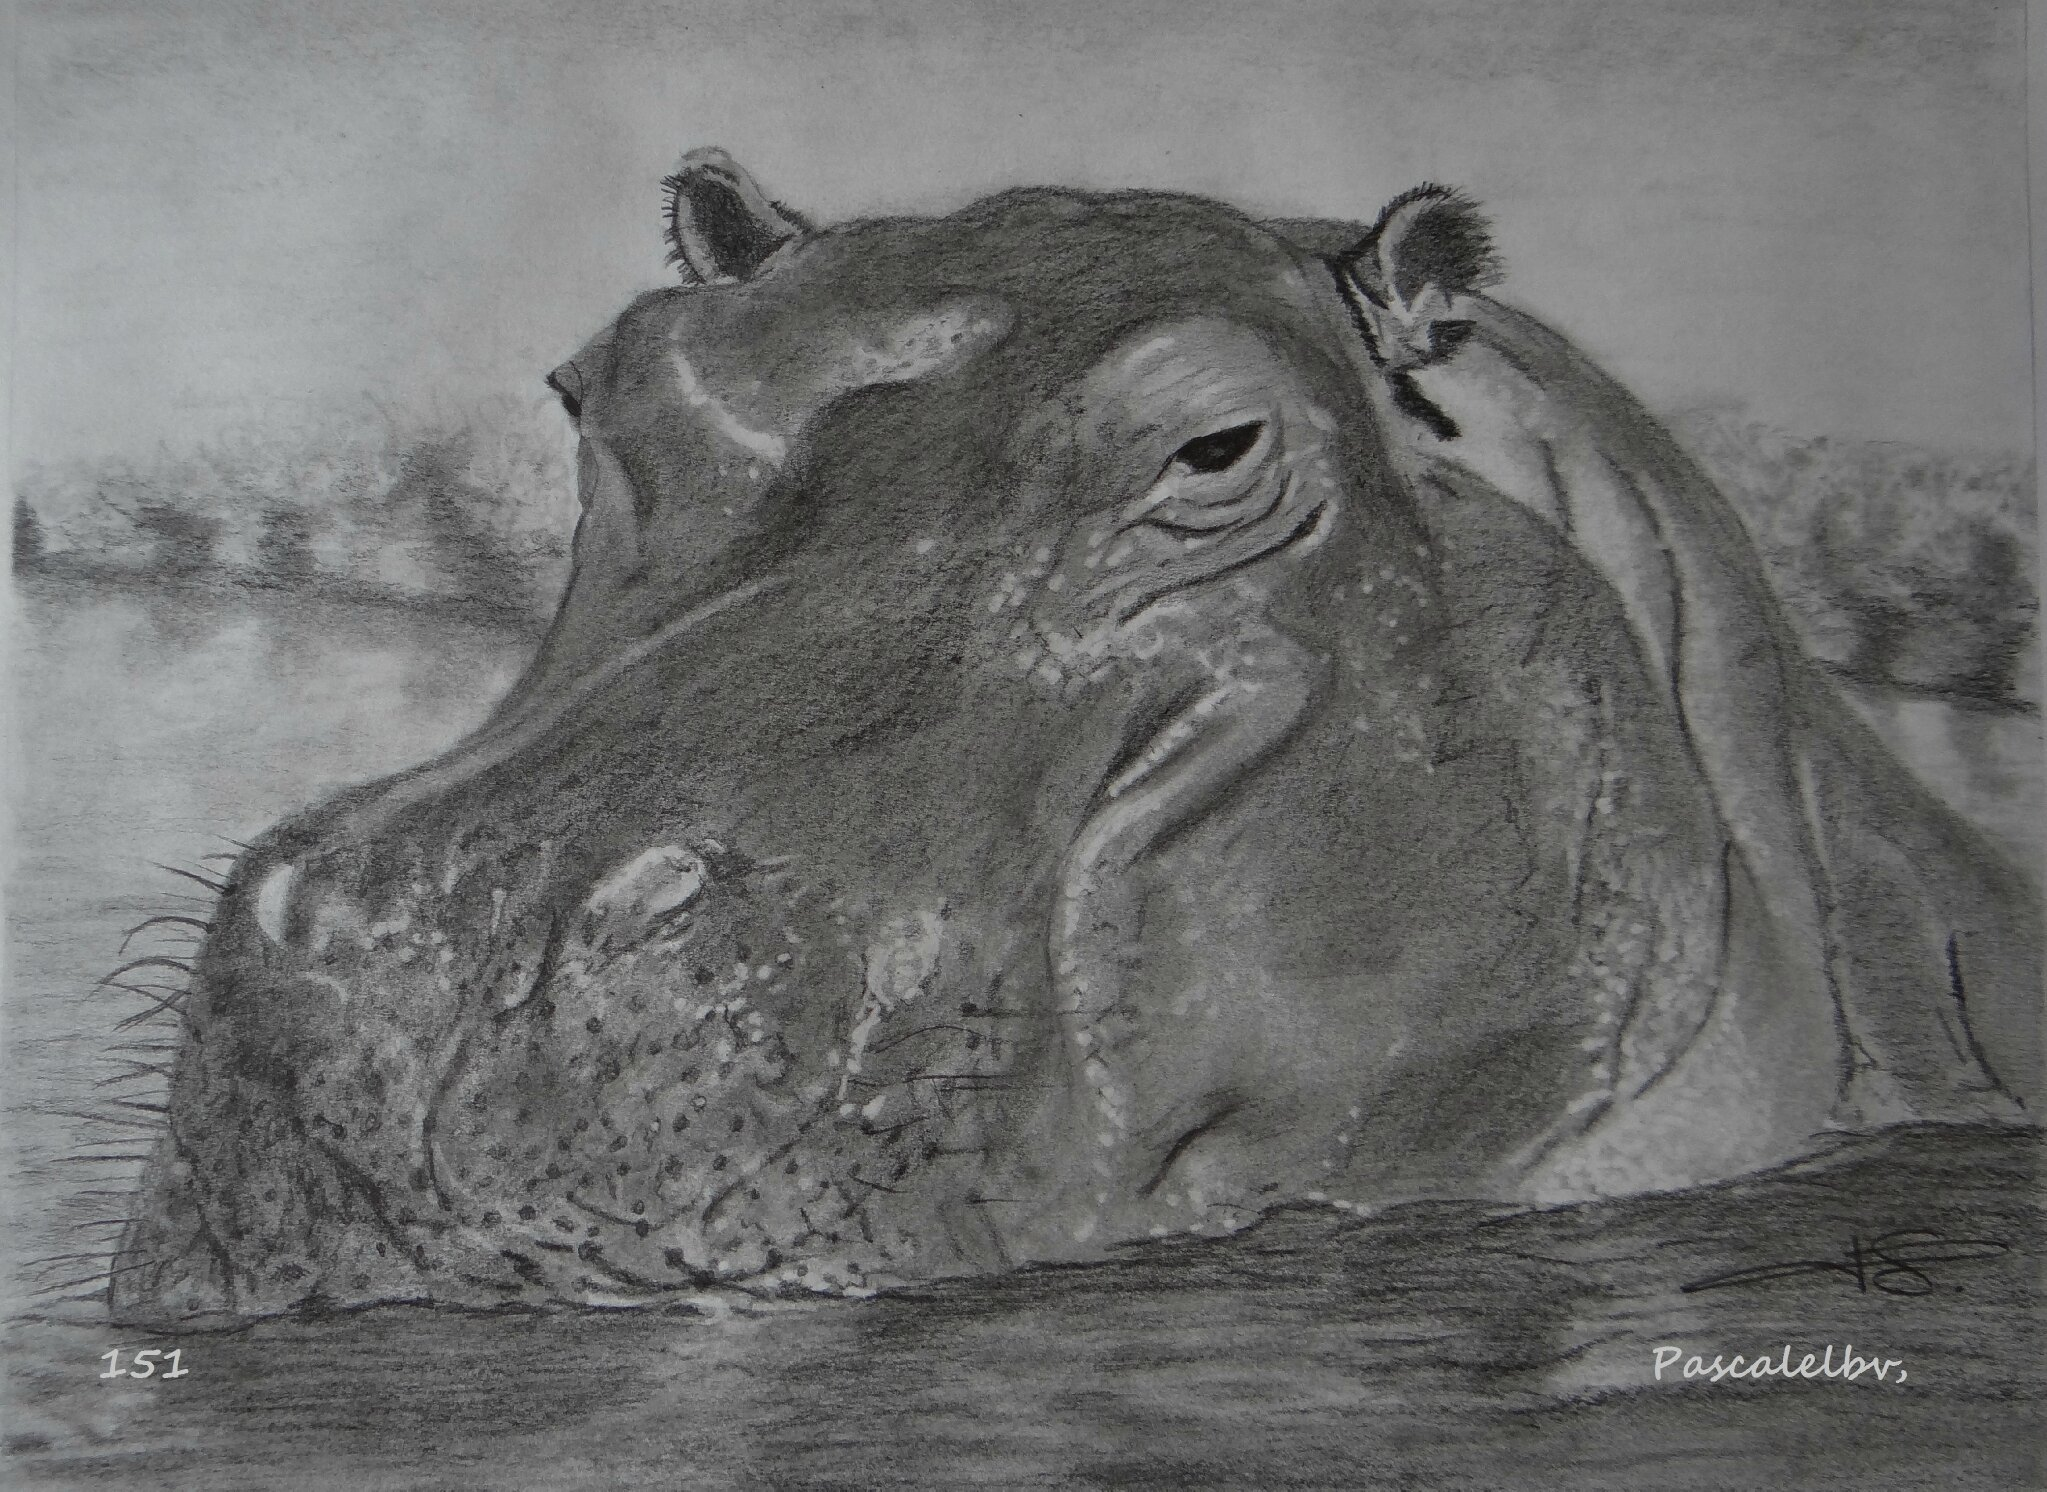 151 - L'hippo 30X40 - NON DISPONIBLE